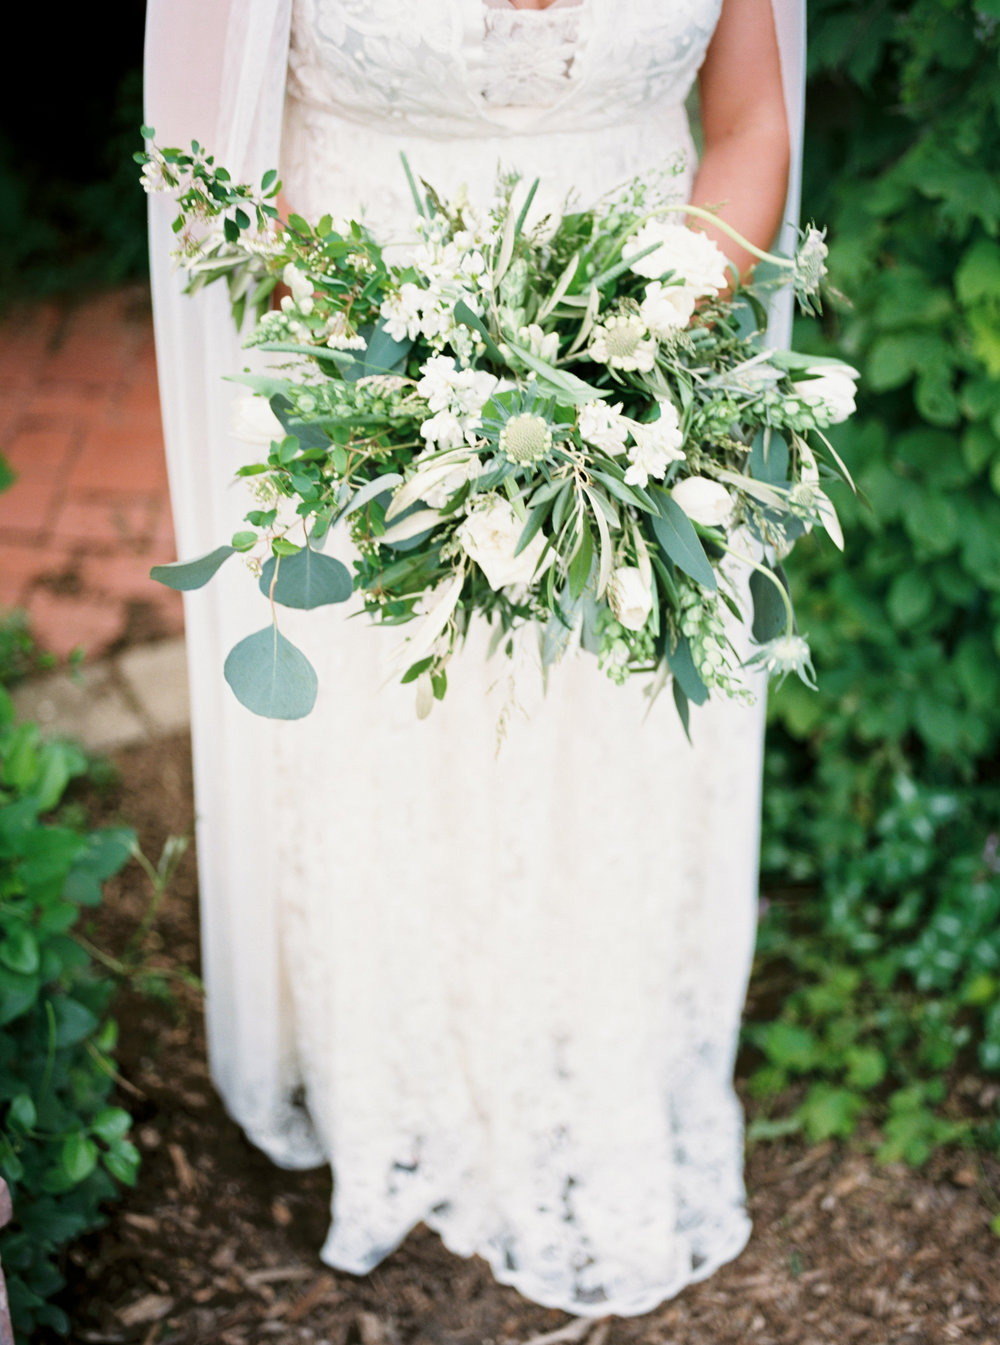 greenhouse-wedding-inspiration-by-laurelyn-savannah-photography-134.jpg